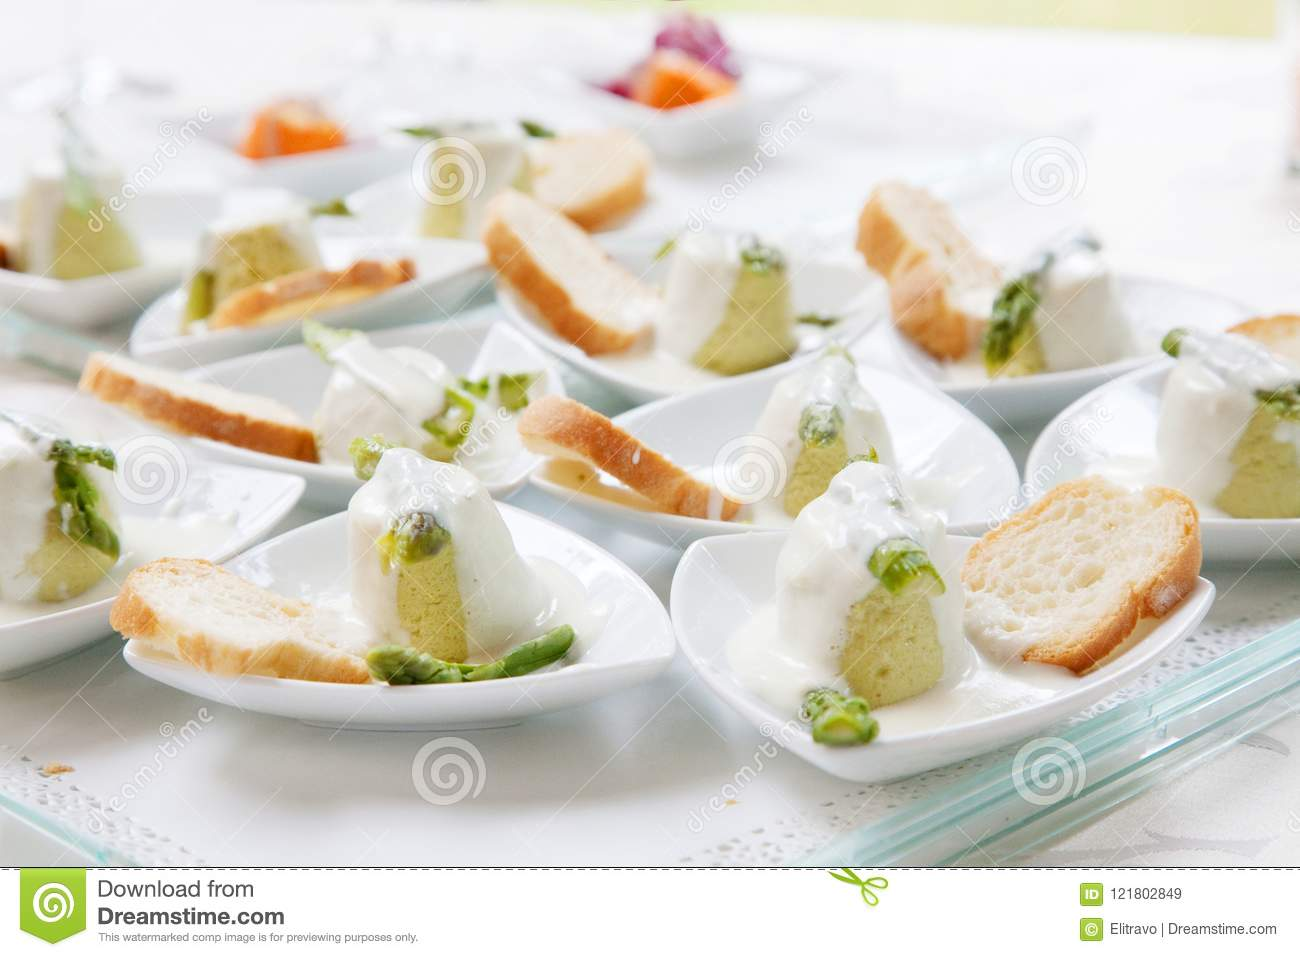 Assortment Appetizers And Finger Food Stock Image Image Of Banquet